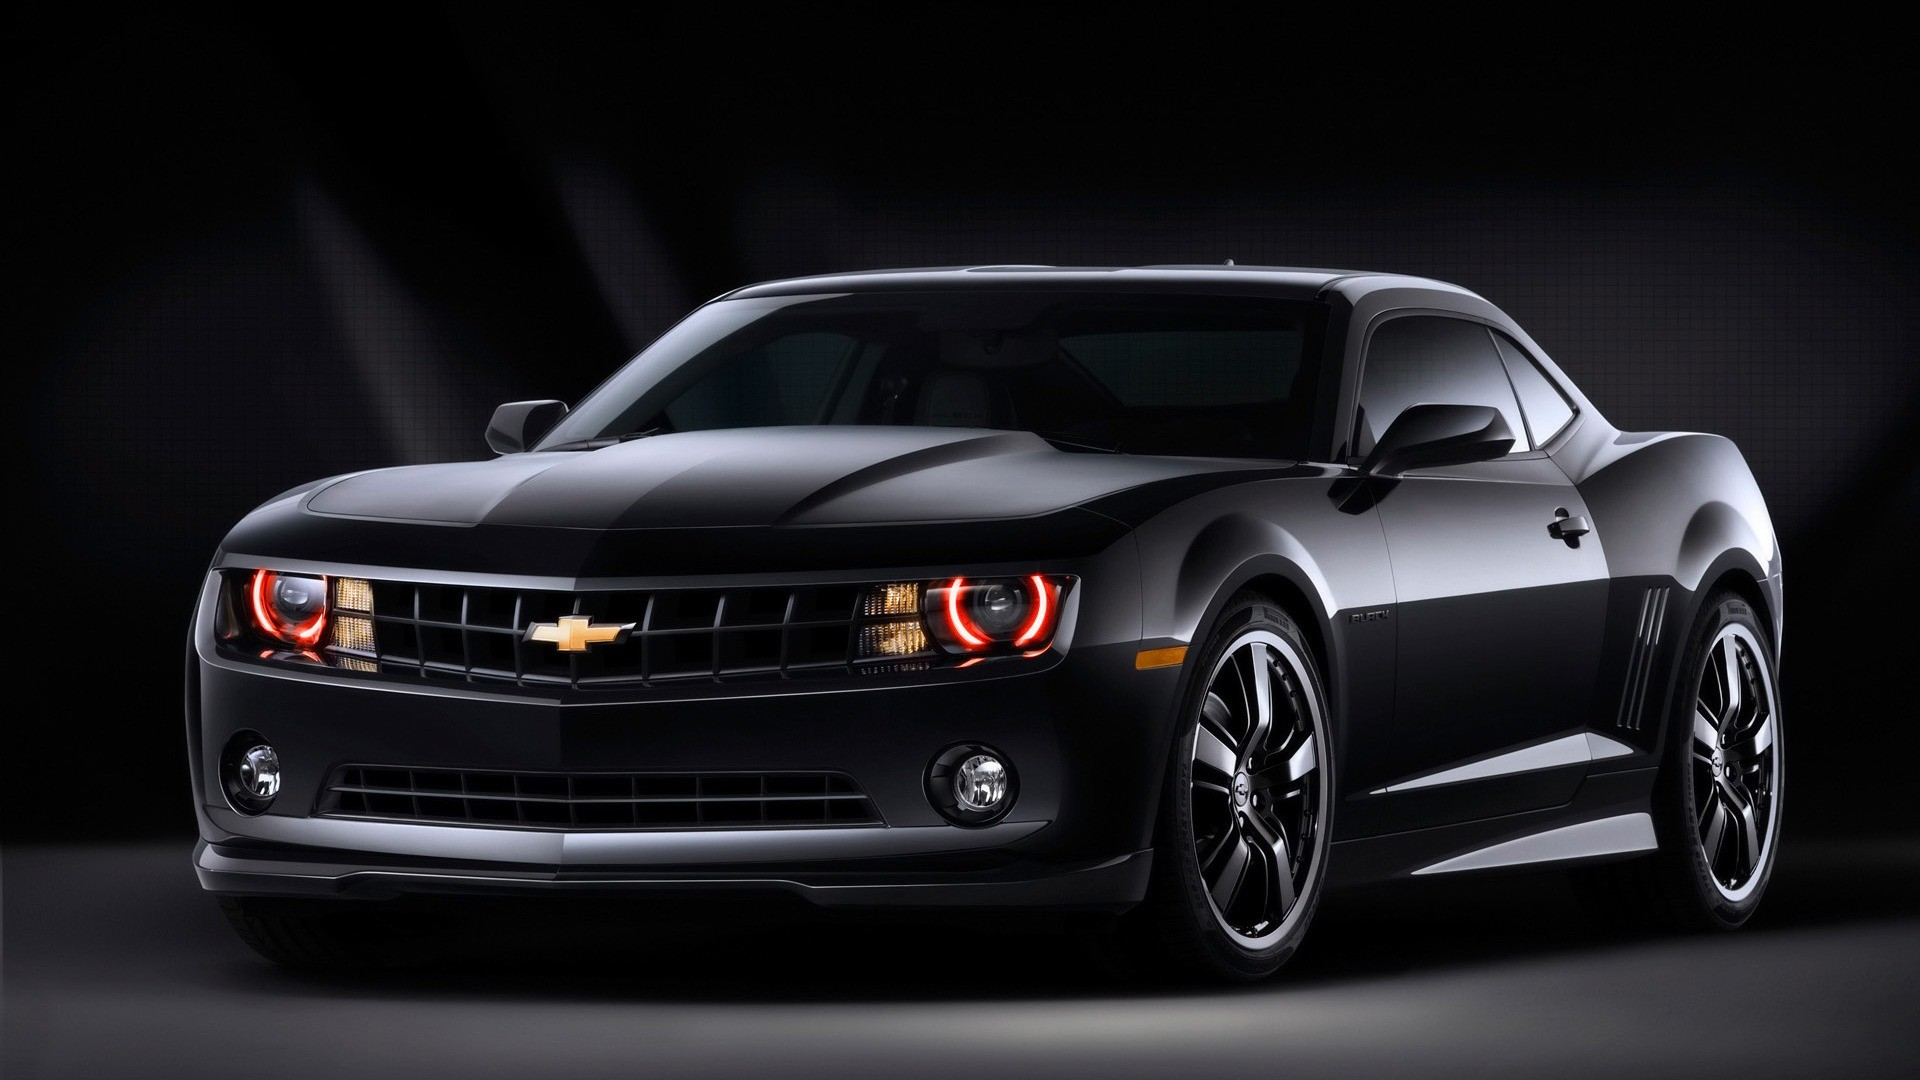 1920x1080 1080p Chevrolet Car-HD Wallpaper